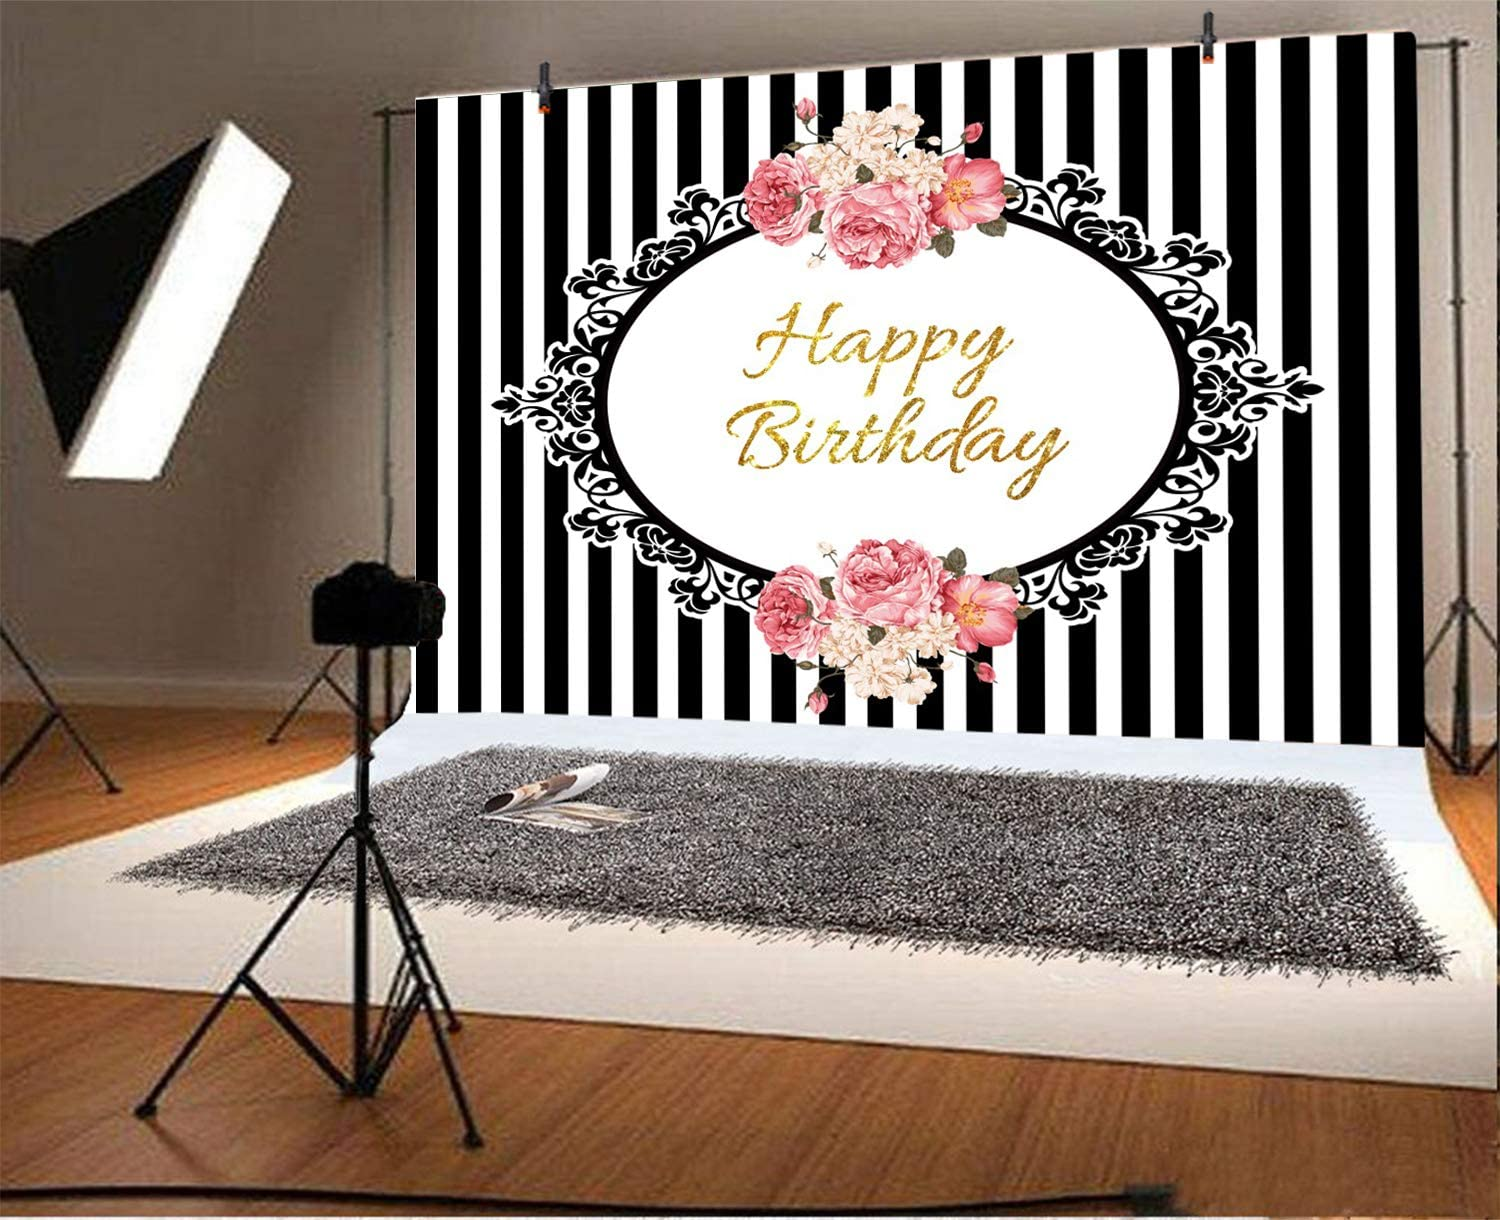 Black and White Stirpes Backdrops 10x6.5ft Vintage Photo Frame Happy Birthday Party Decoration Background for Photography Watercolor Flowers Border Striped Banner Party